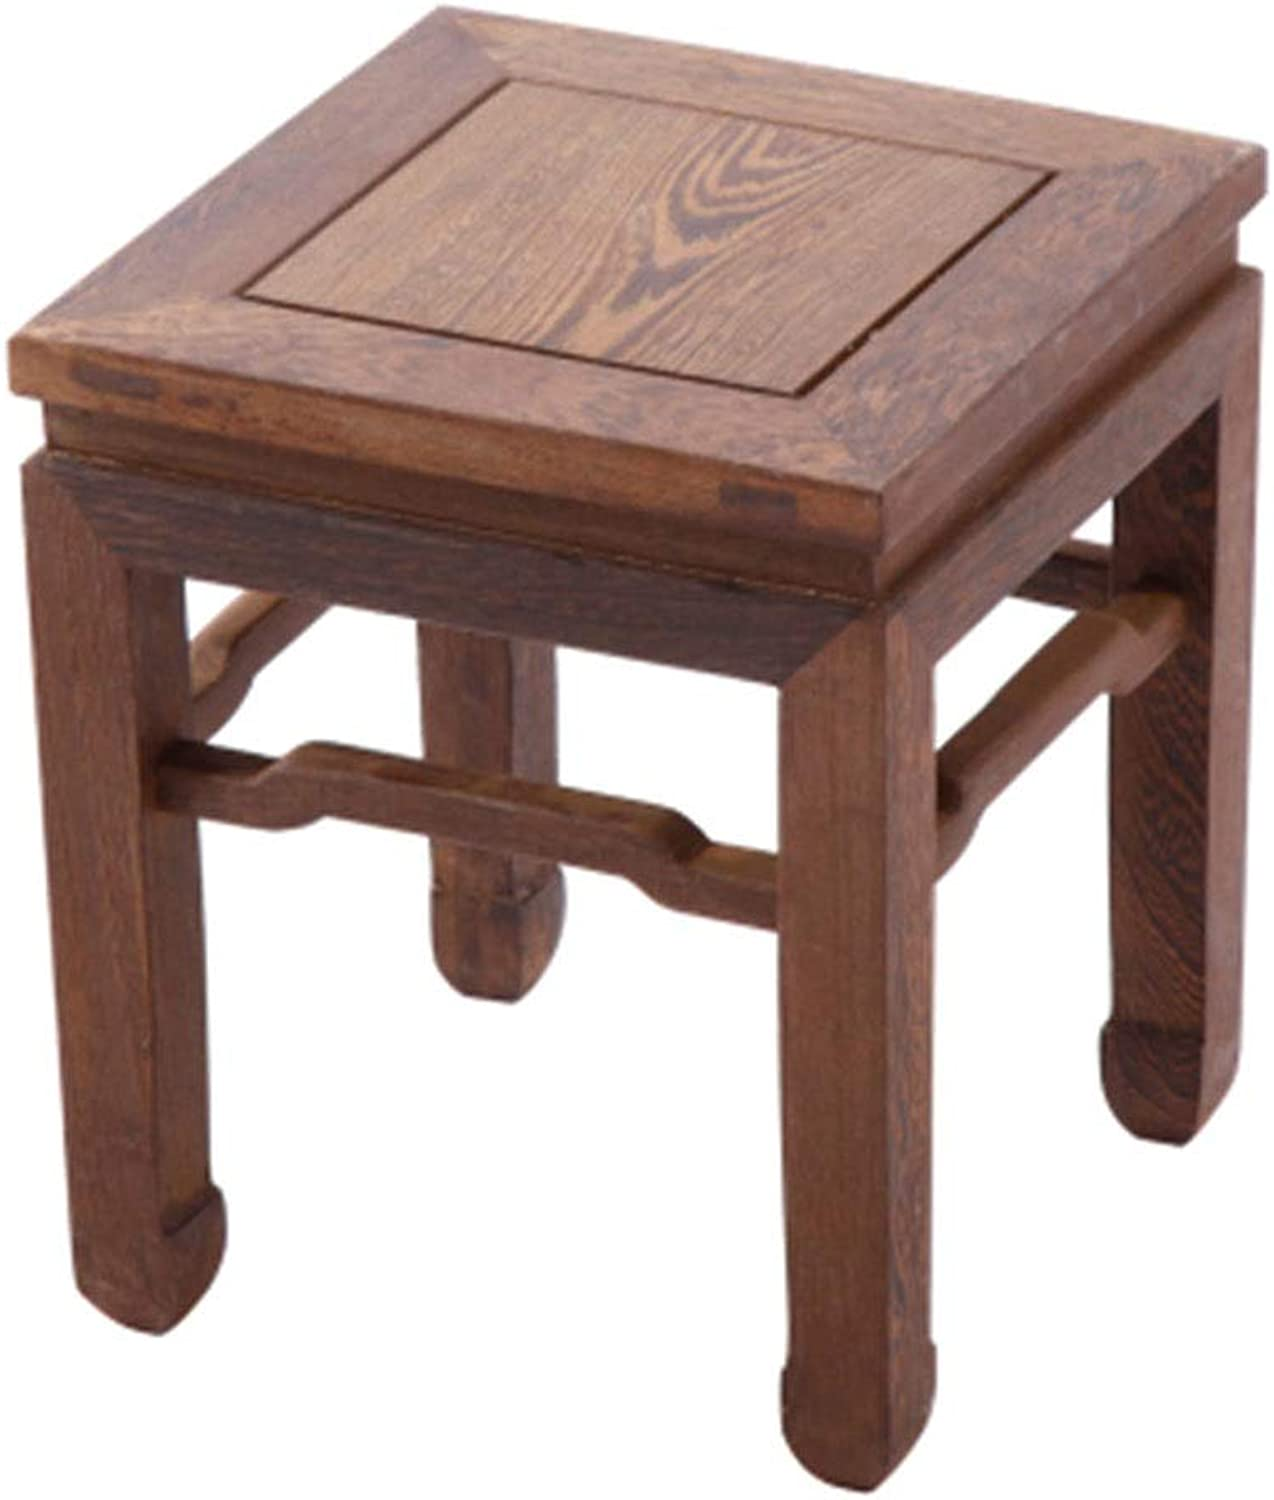 B.YDCM Wooden Bench- Stool Home Living Room Solid Wood Dining Chair Square Stool Coffee Table Restaurant Small Bench - Wood Bench